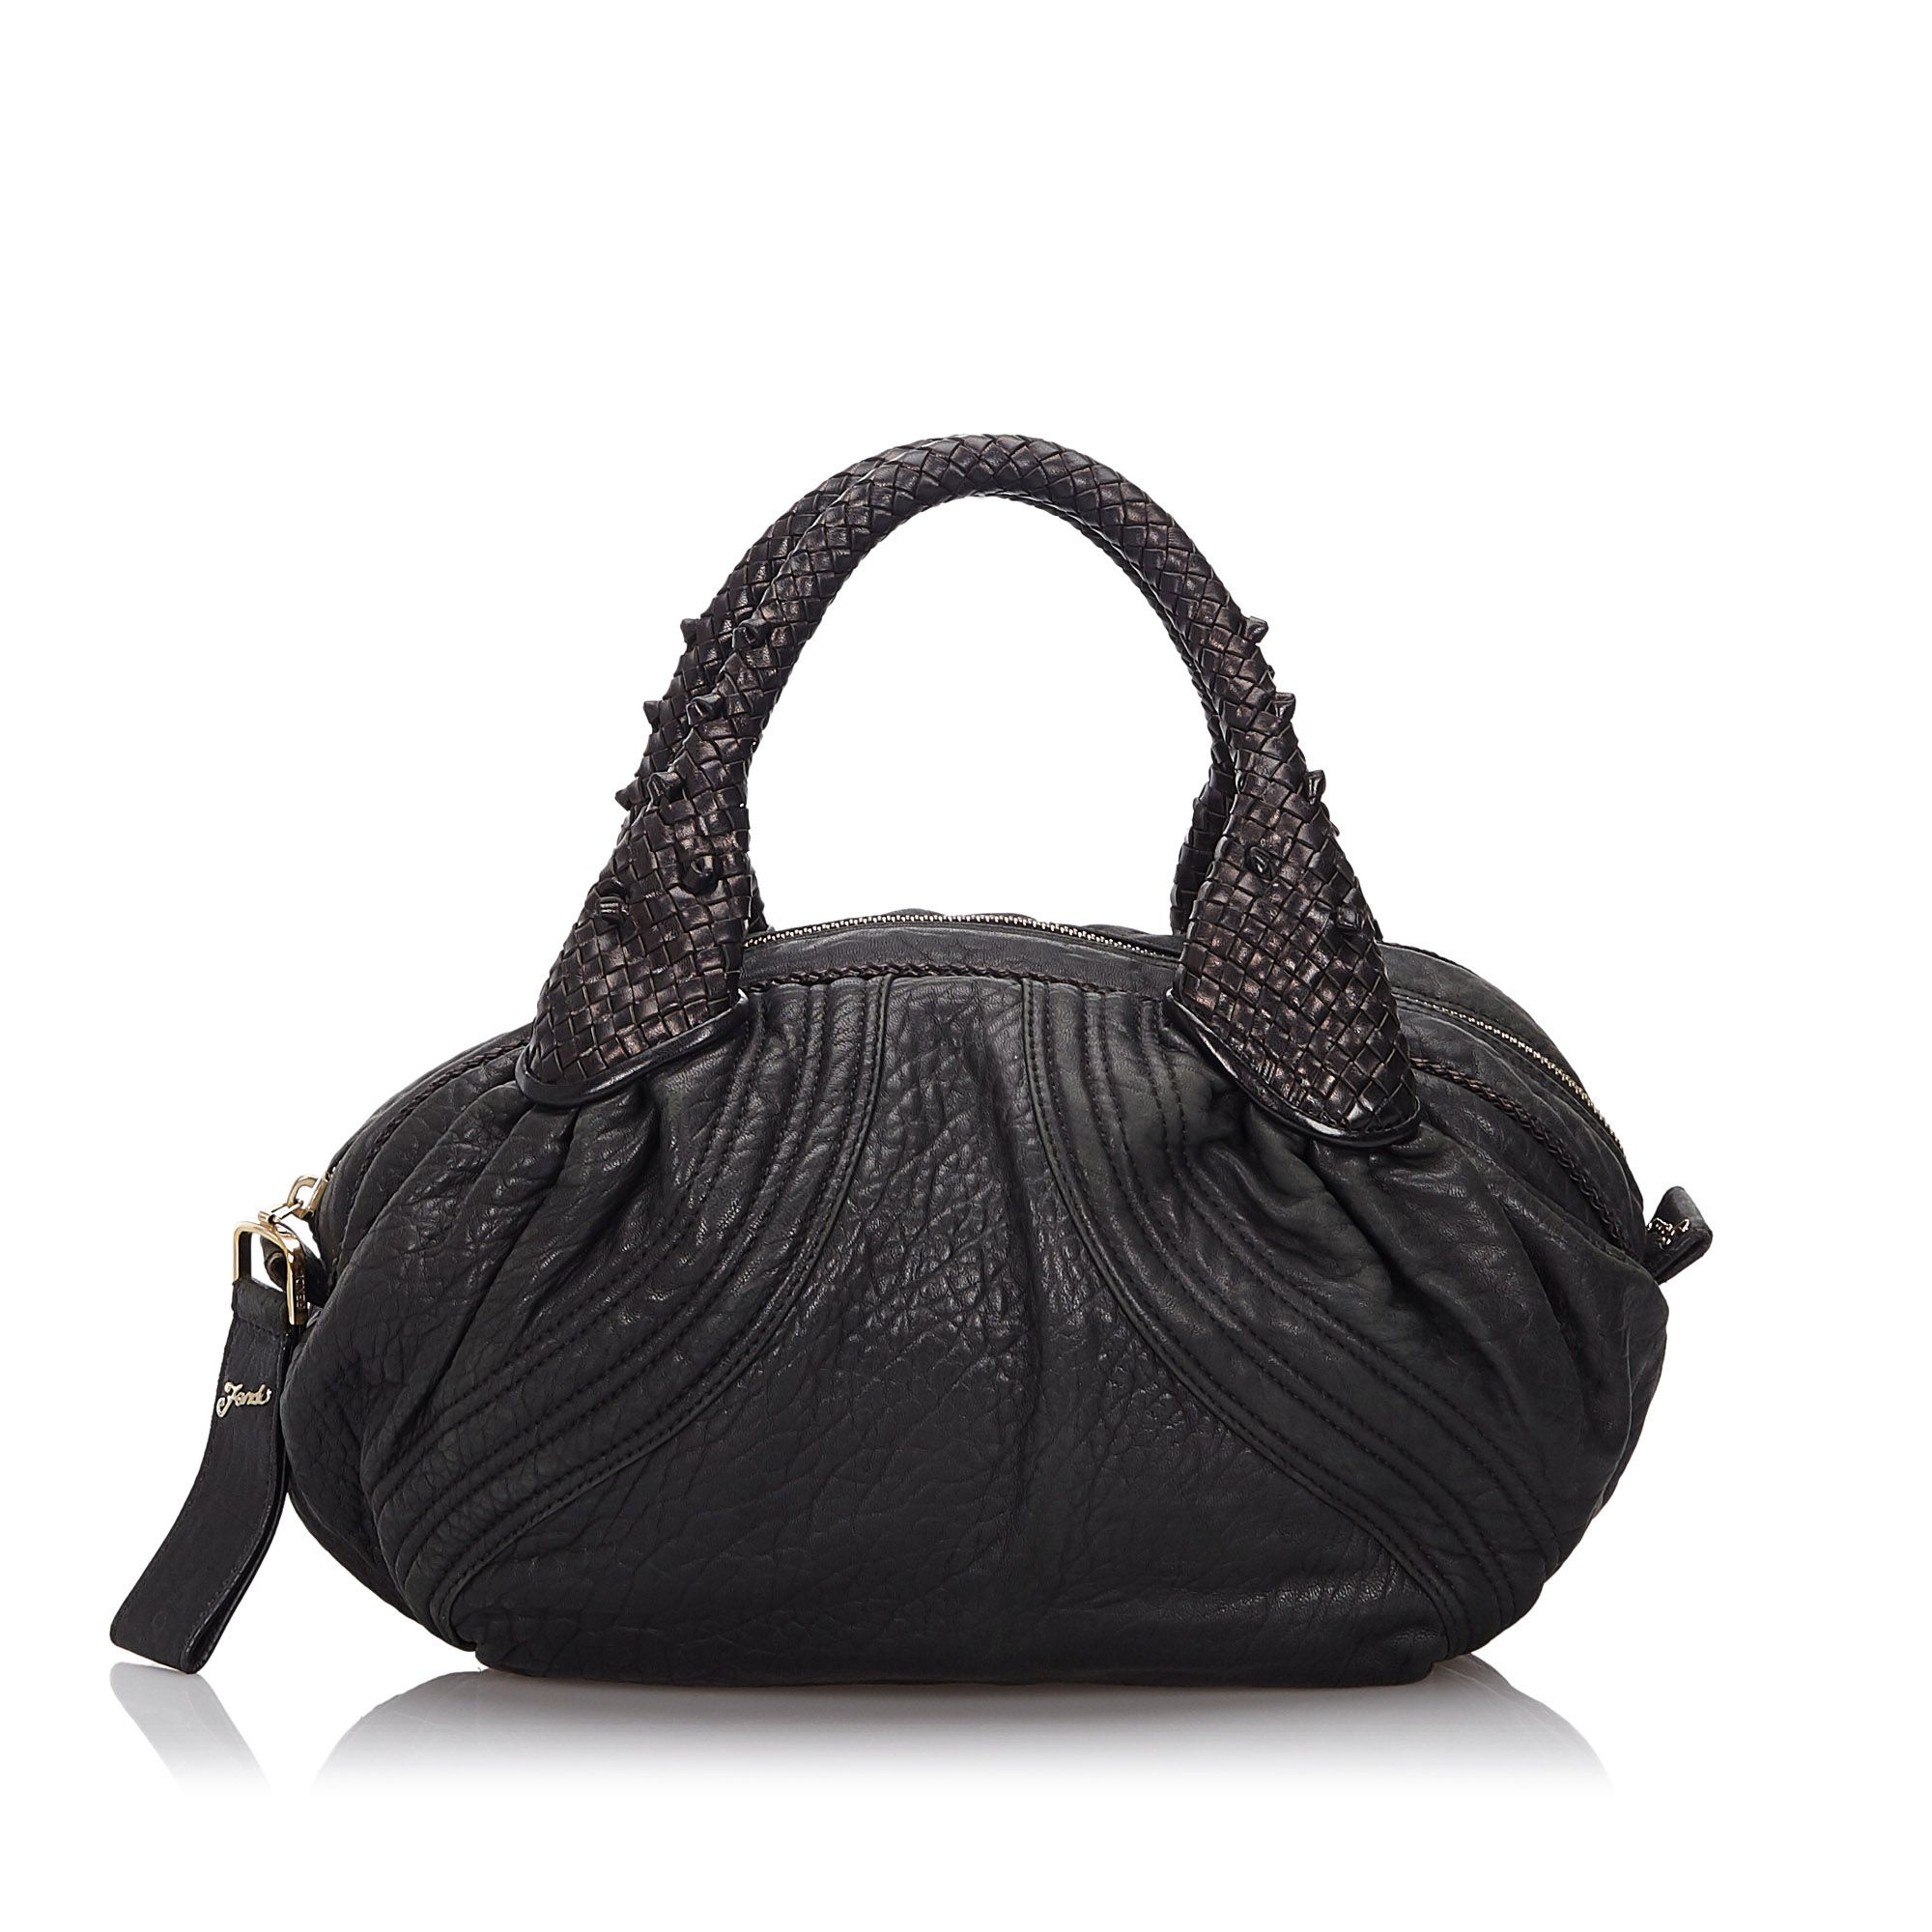 Vintage Fendi Leather Mini Spy Hobo Bag Black